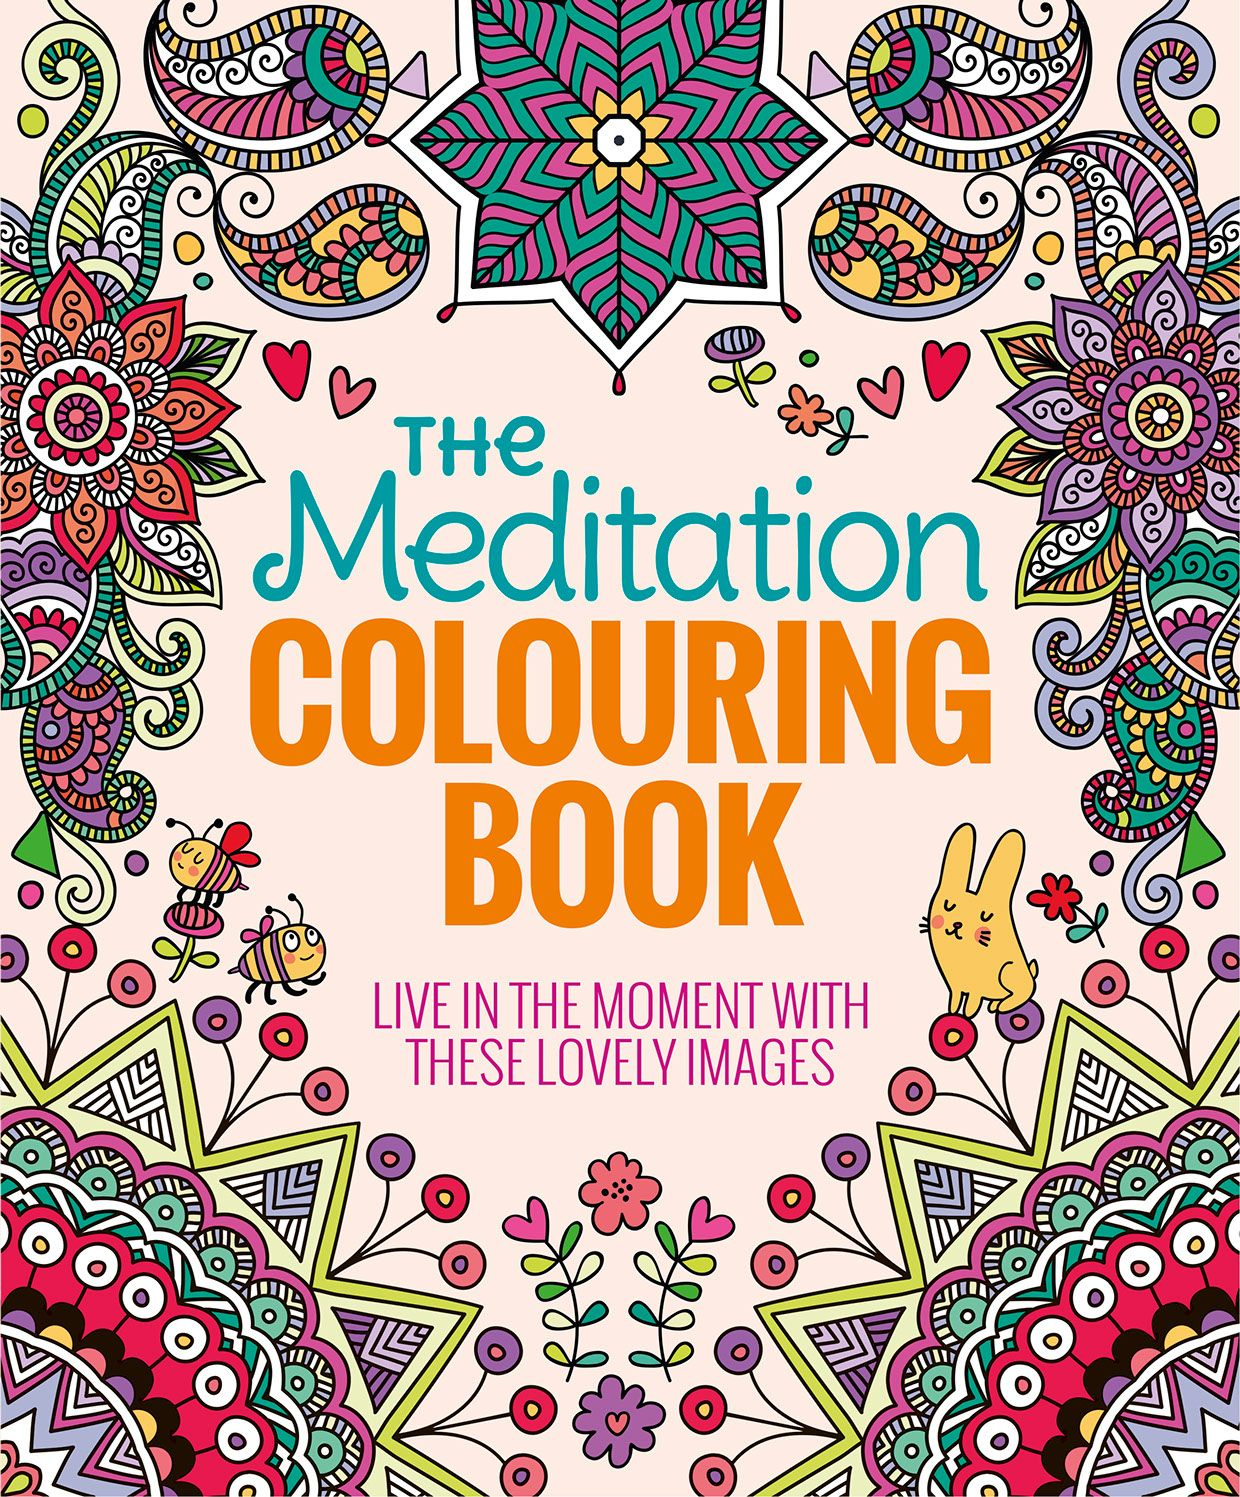 The Paperback Of Meditation Coloring Book Live In Moment With These Lovely Images By Editors Thunder Bay Press At Barnes Noble